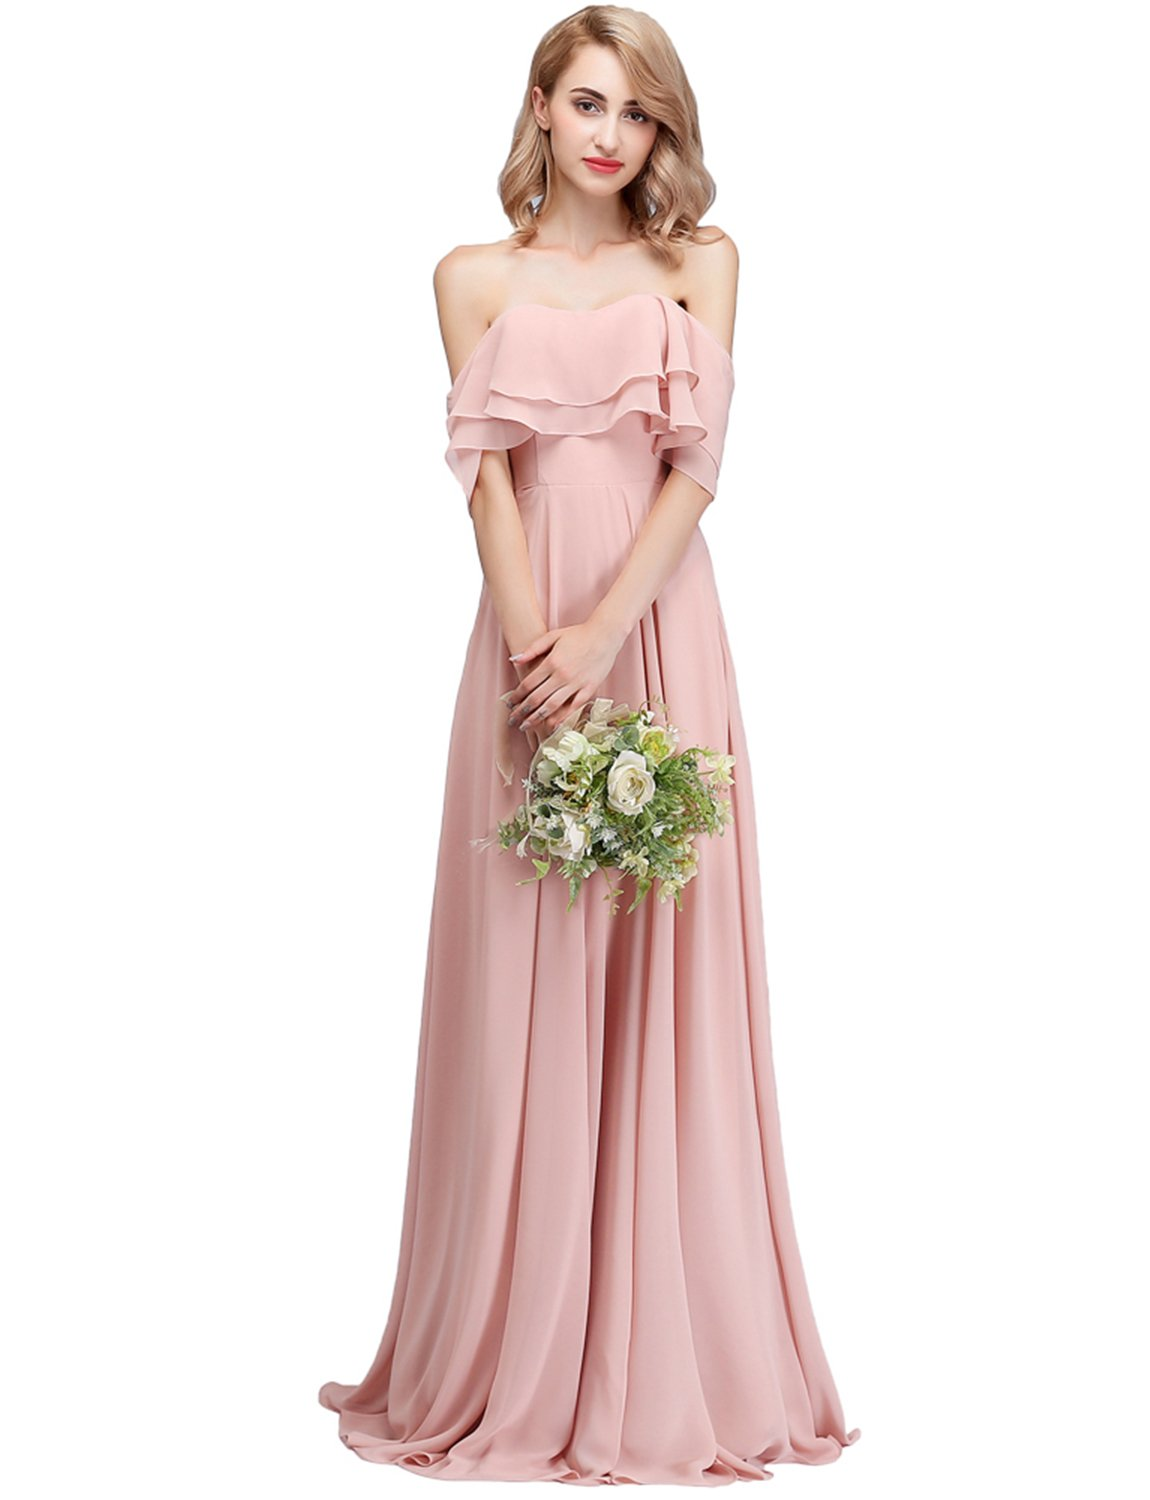 outlet store well known reputable site CLOTHKNOW Strapless Chiffon Bridesmaid Dresses Long Blush with Shoulder  Ruffles for Women Girls to Wedding Party Gowns